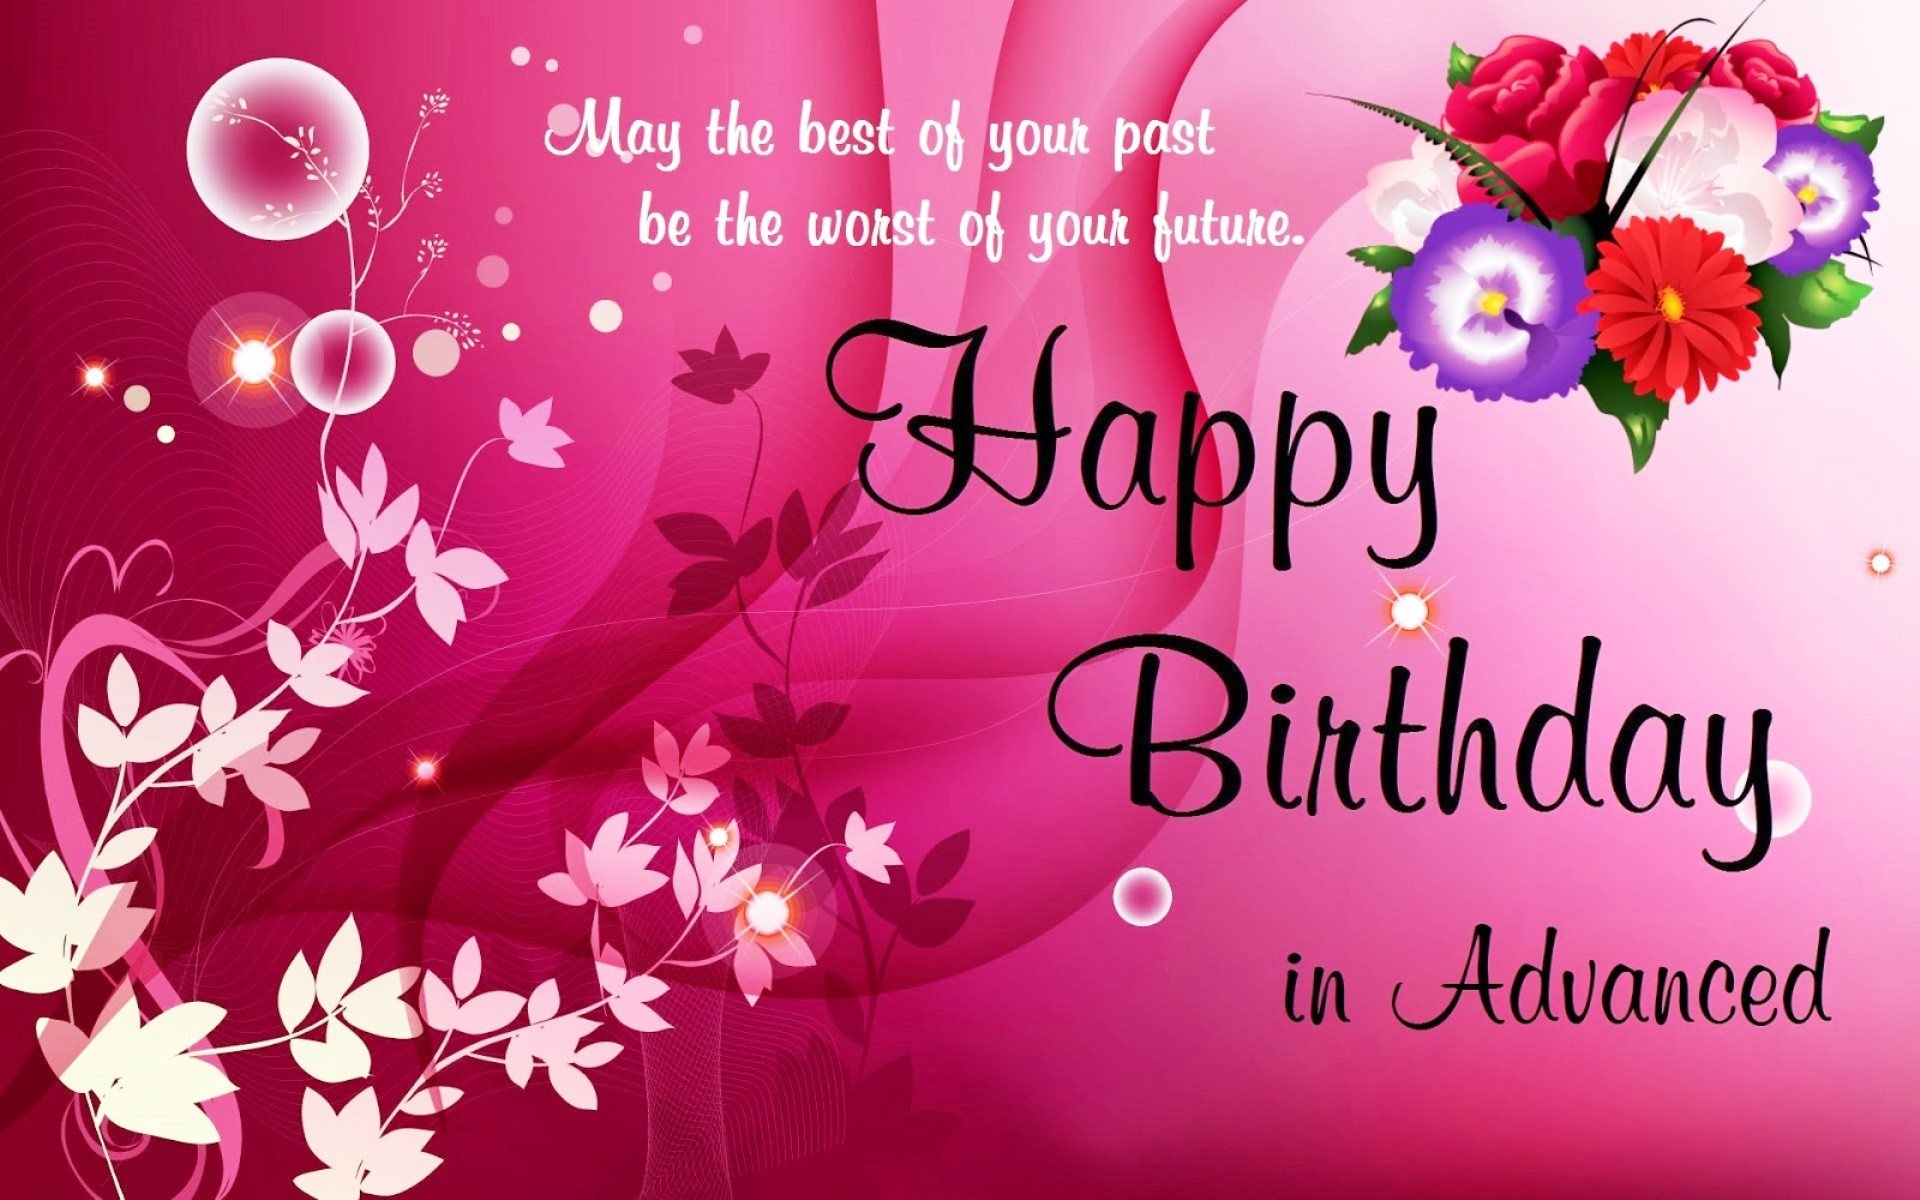 birthday wishes wallpaper ; advance-birthday-wishes-beautiful-happy-birthday-wishes-wallpapers-get-the-newest-collection-of-layout-of-advance-birthday-wishes